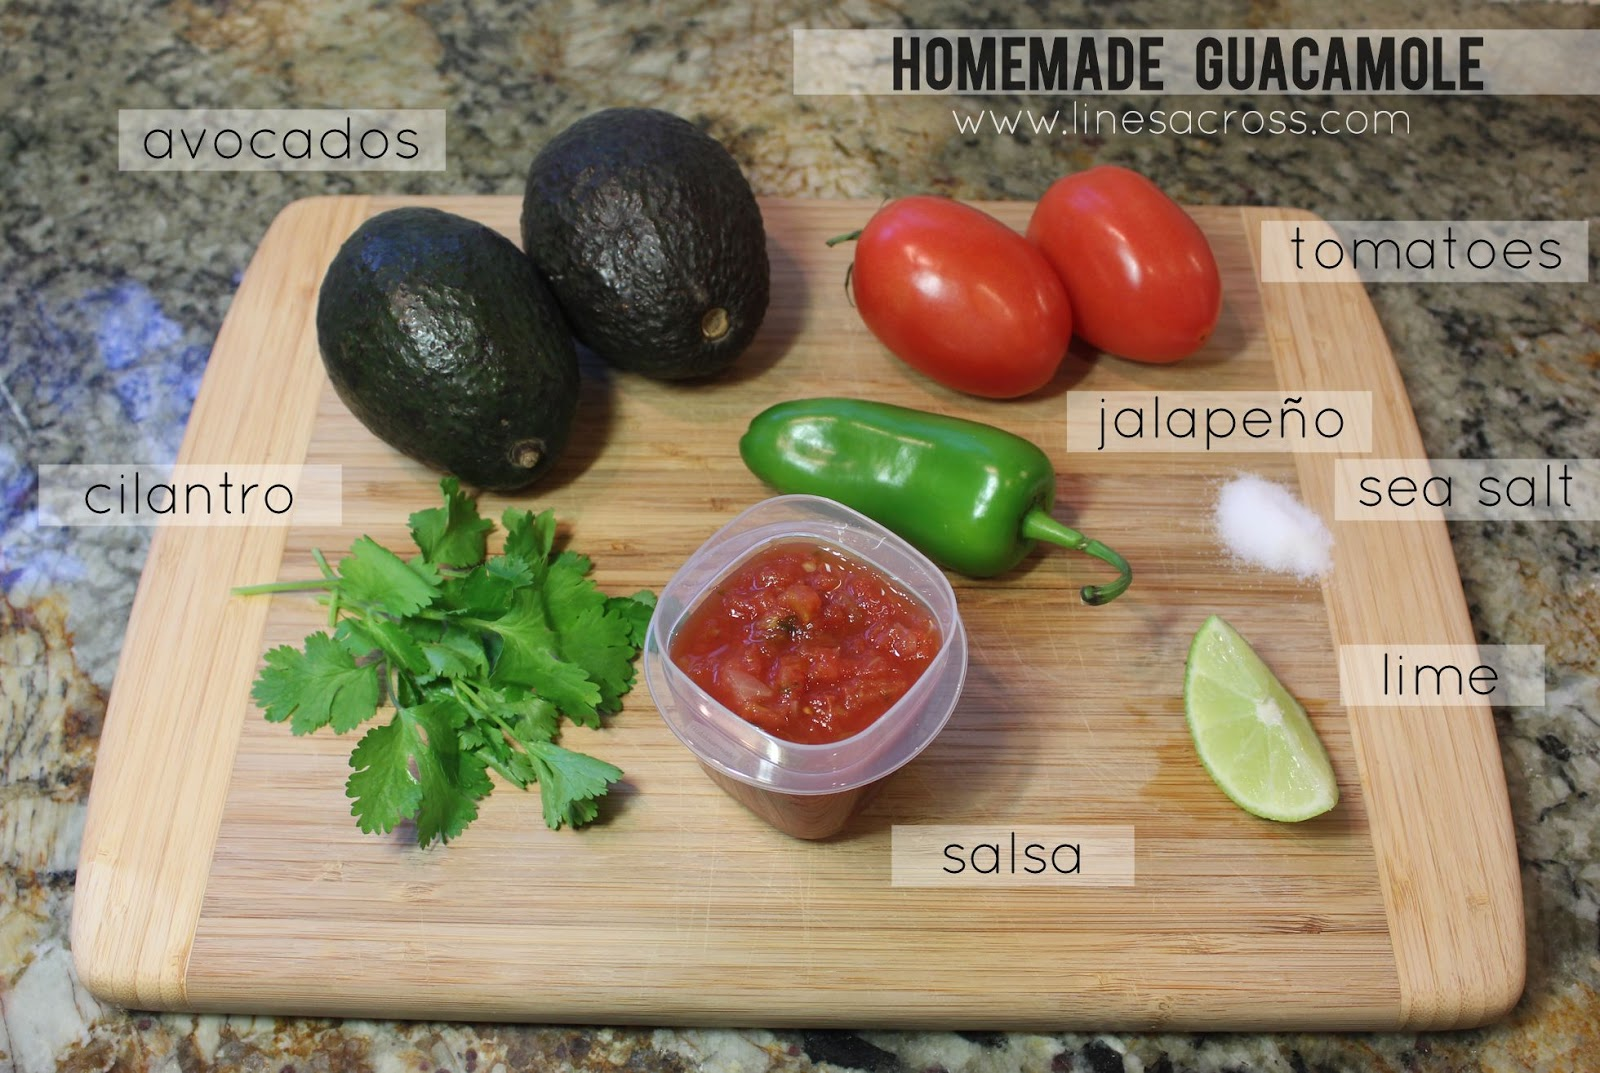 homemade guacamole recipe serves 3 4 2 ripe avocados 3